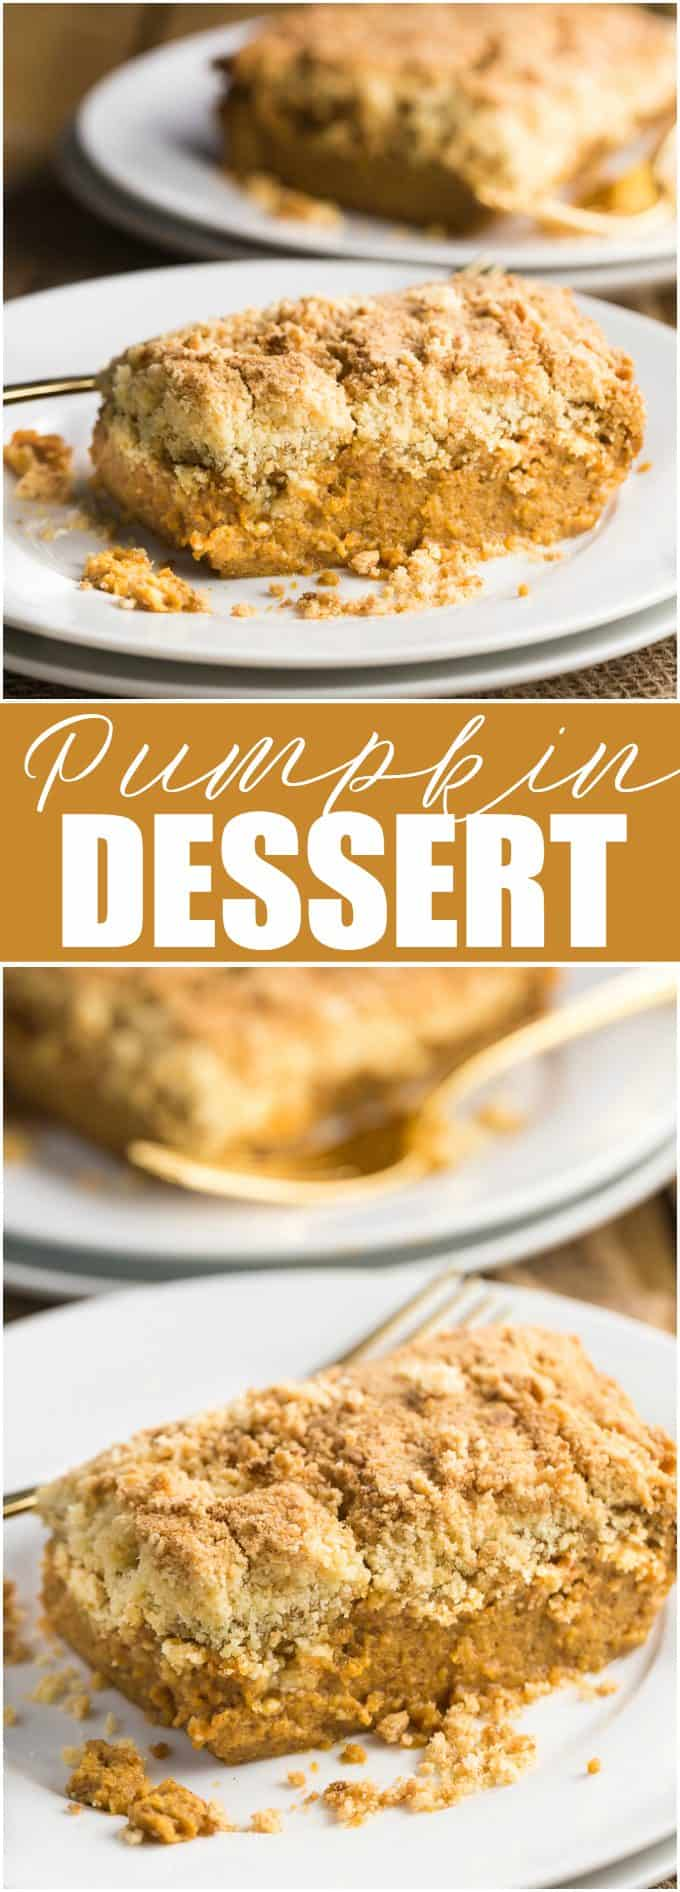 Pumpkin Dessert - Made with yellow cake mix! Easy to prepare and tastes as good as pumpkin pie.